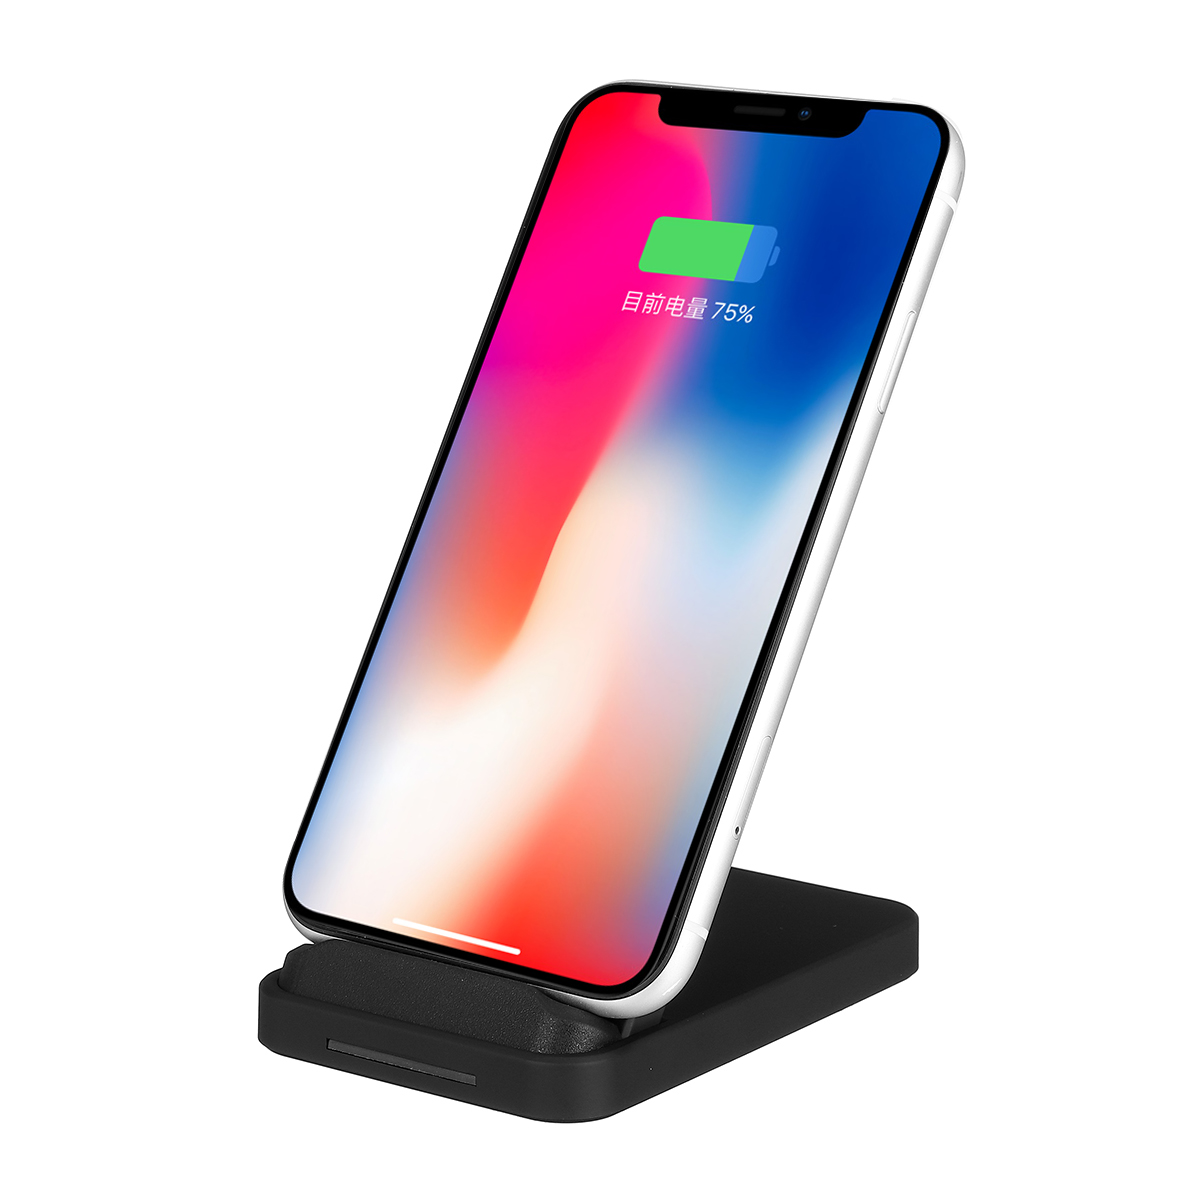 10W Intelligent Recognition QI Wireless Charger Phone Holder Mount for Samsung Xiaomi Huawei